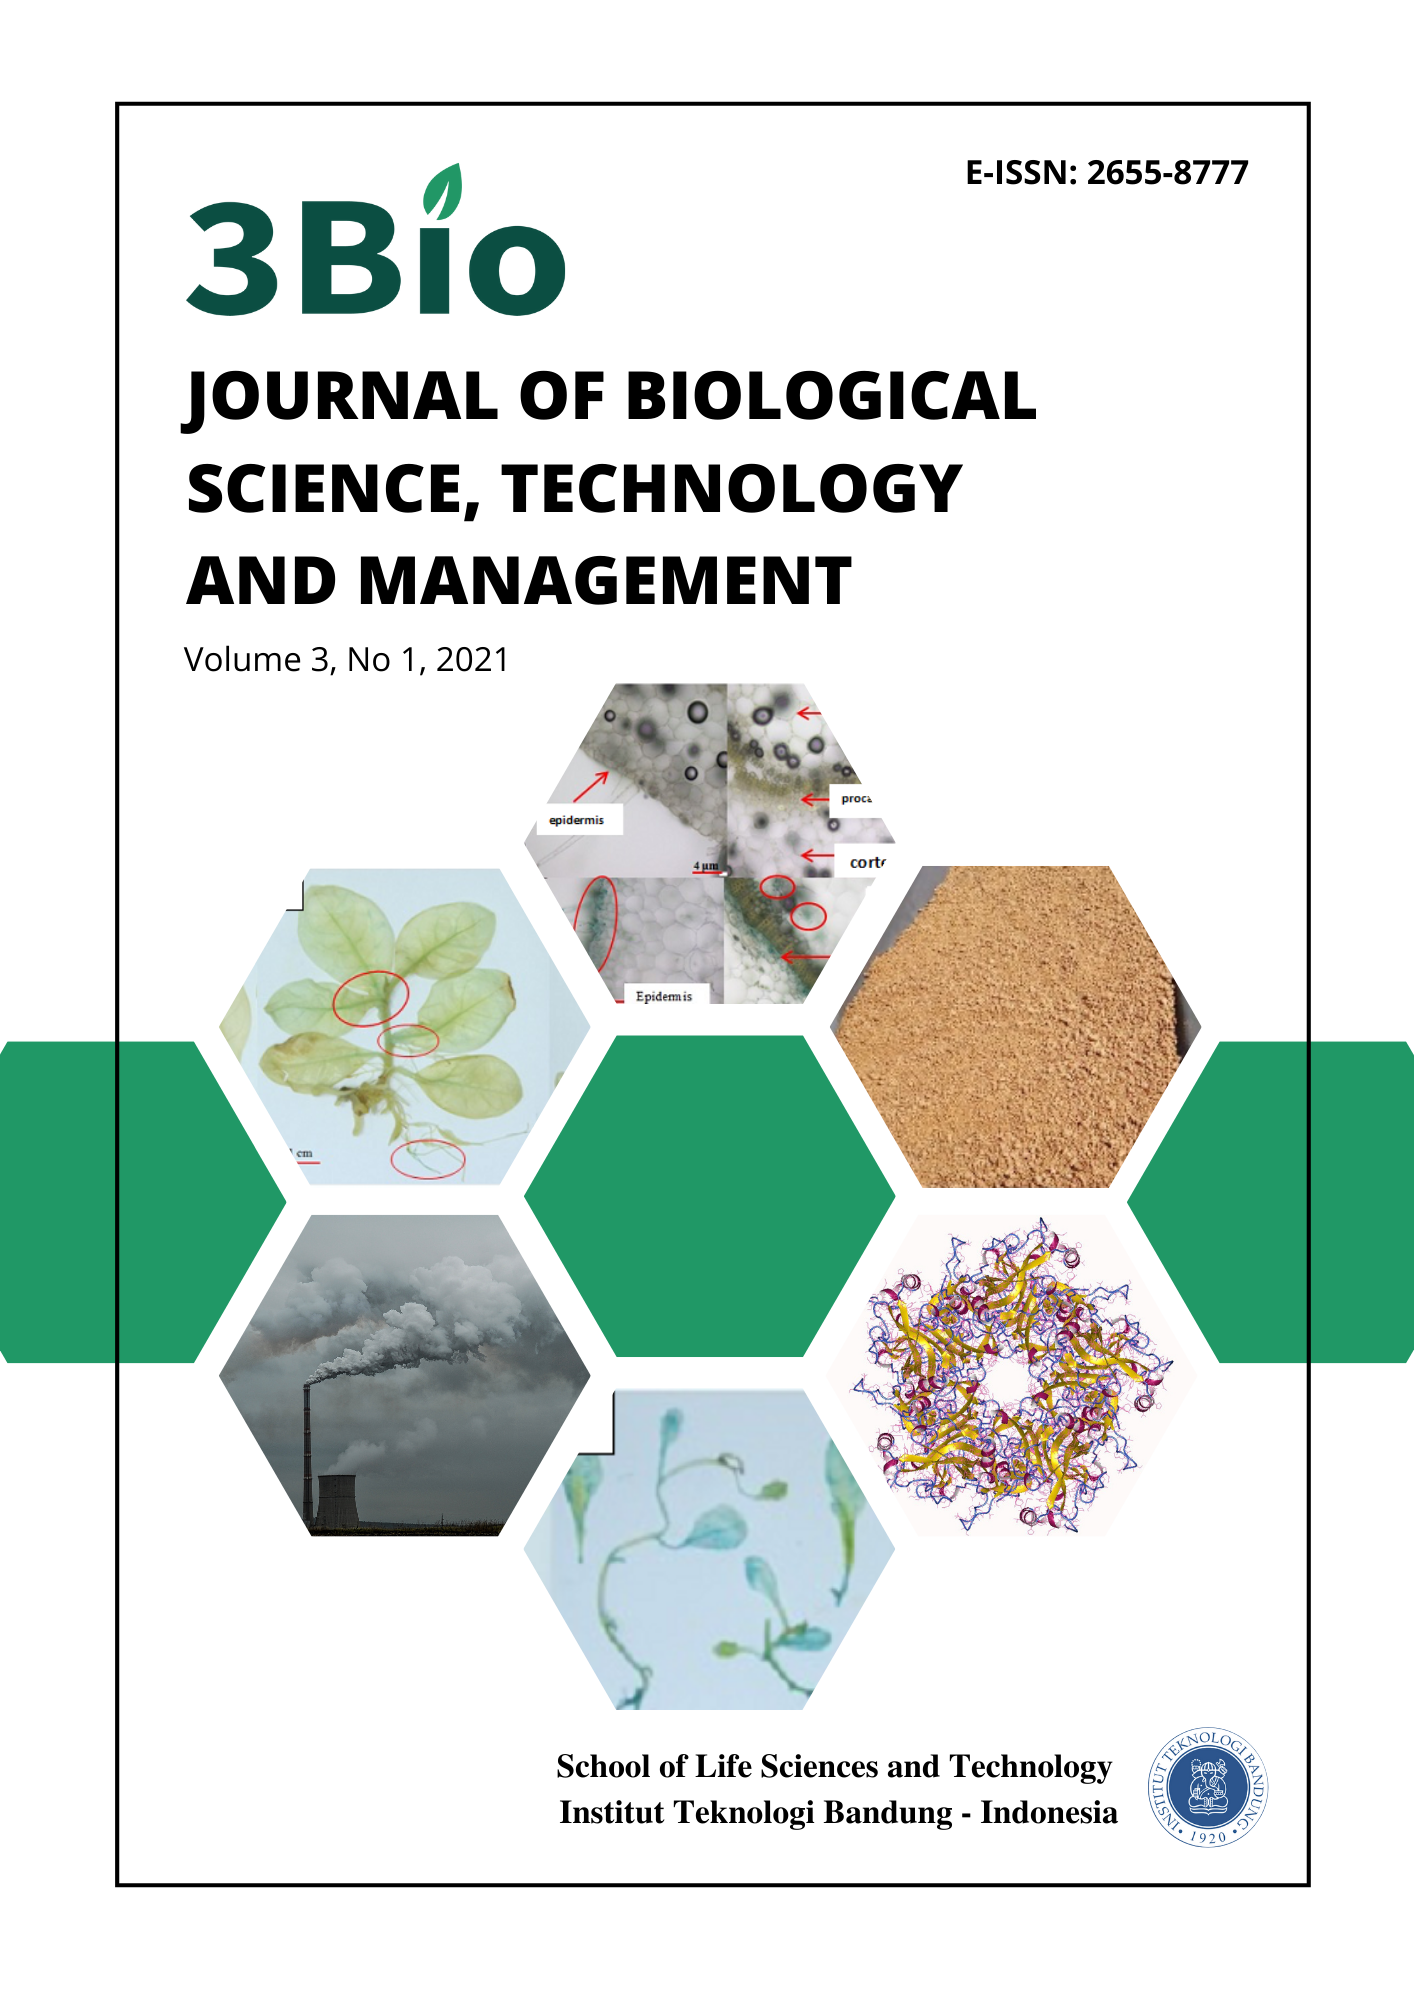 3Bio Journal of Biological Science, Technology And Management Vol. 3 No. 1, 2021